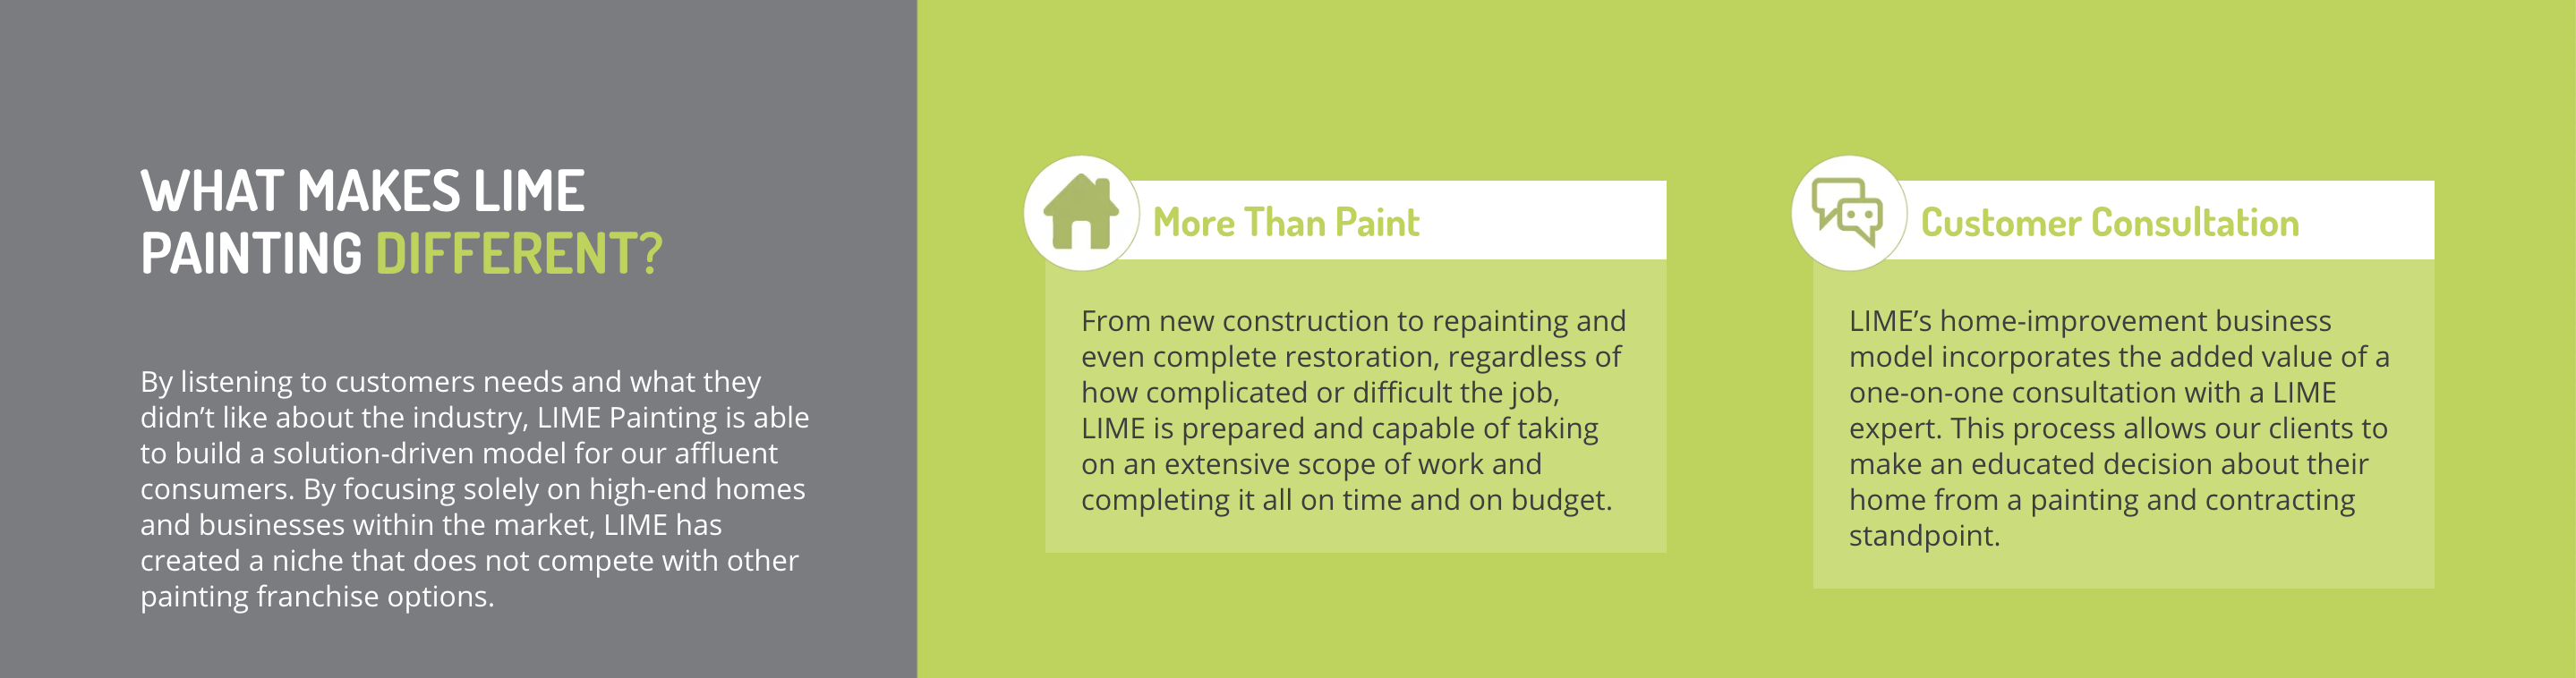 LIME Painting Brand Development